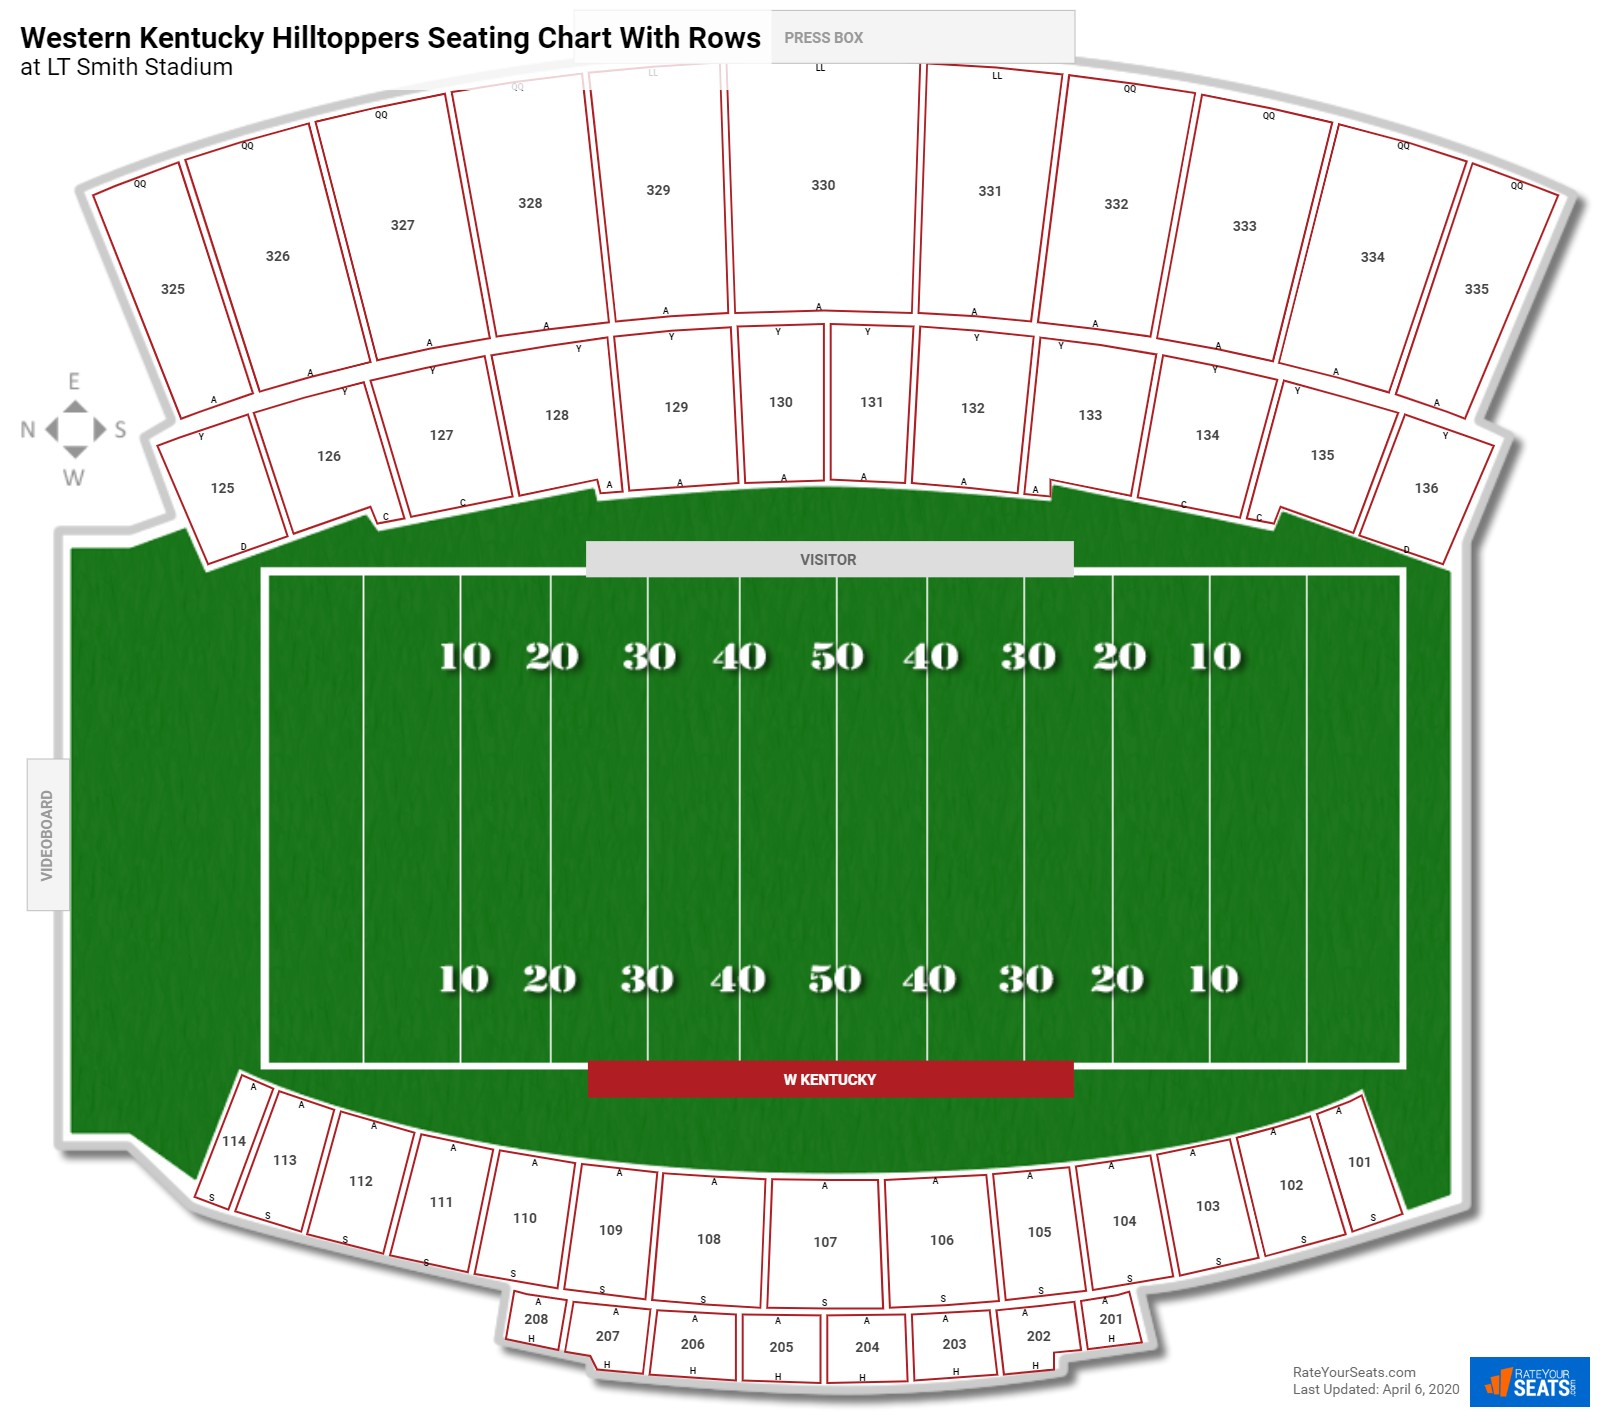 LT Smith Stadium seating chart with rows